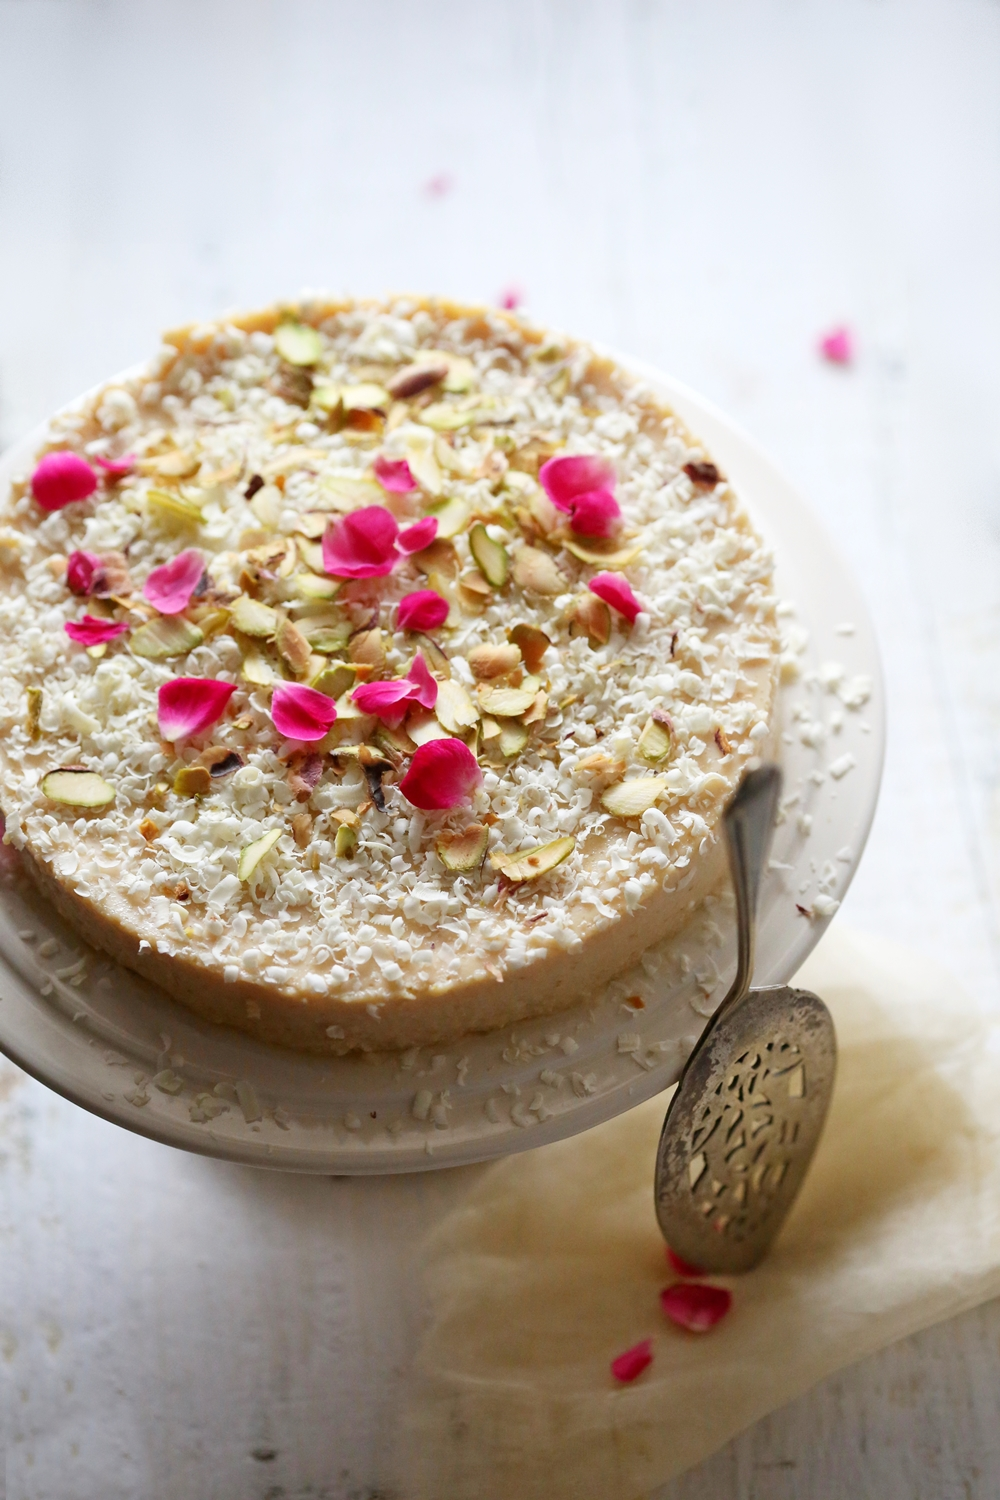 Mishti Doi Eggless Baked Cheesecake